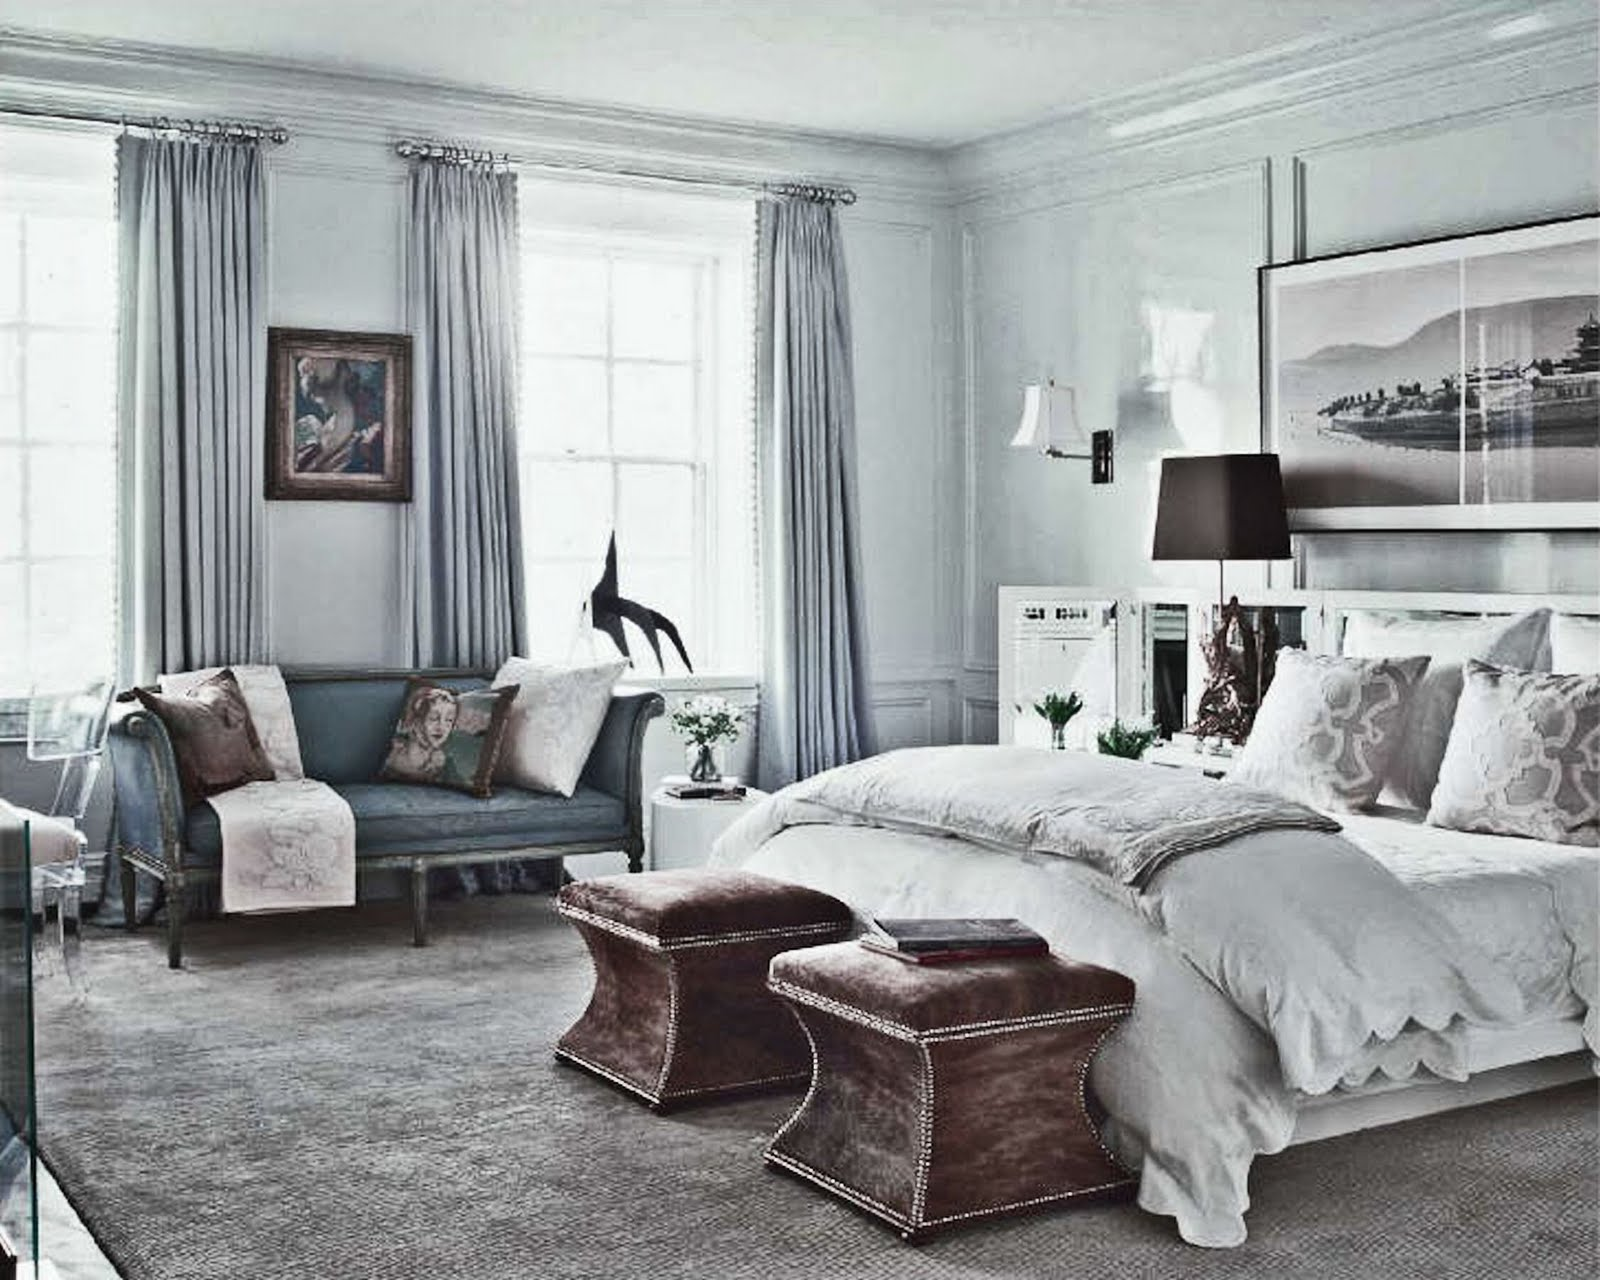 Simple everyday glamour picture perfect bedroom for Bedroom ideas decorating master